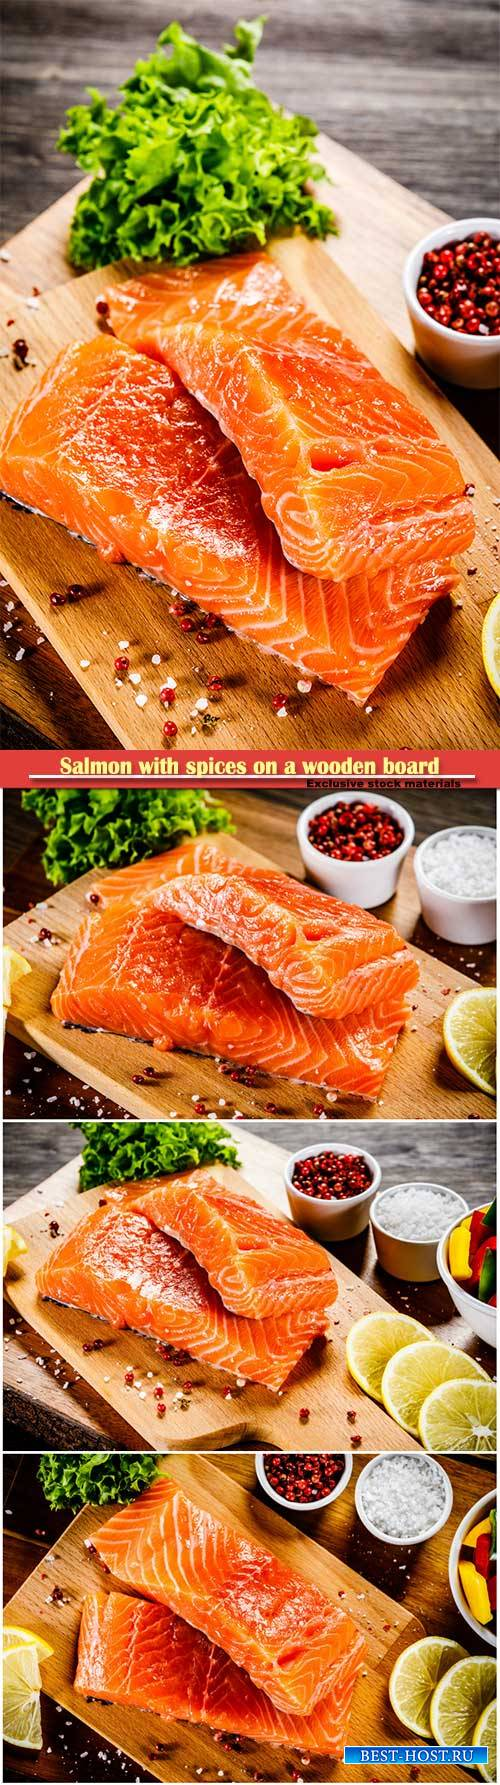 Salmon with spices on a wooden board